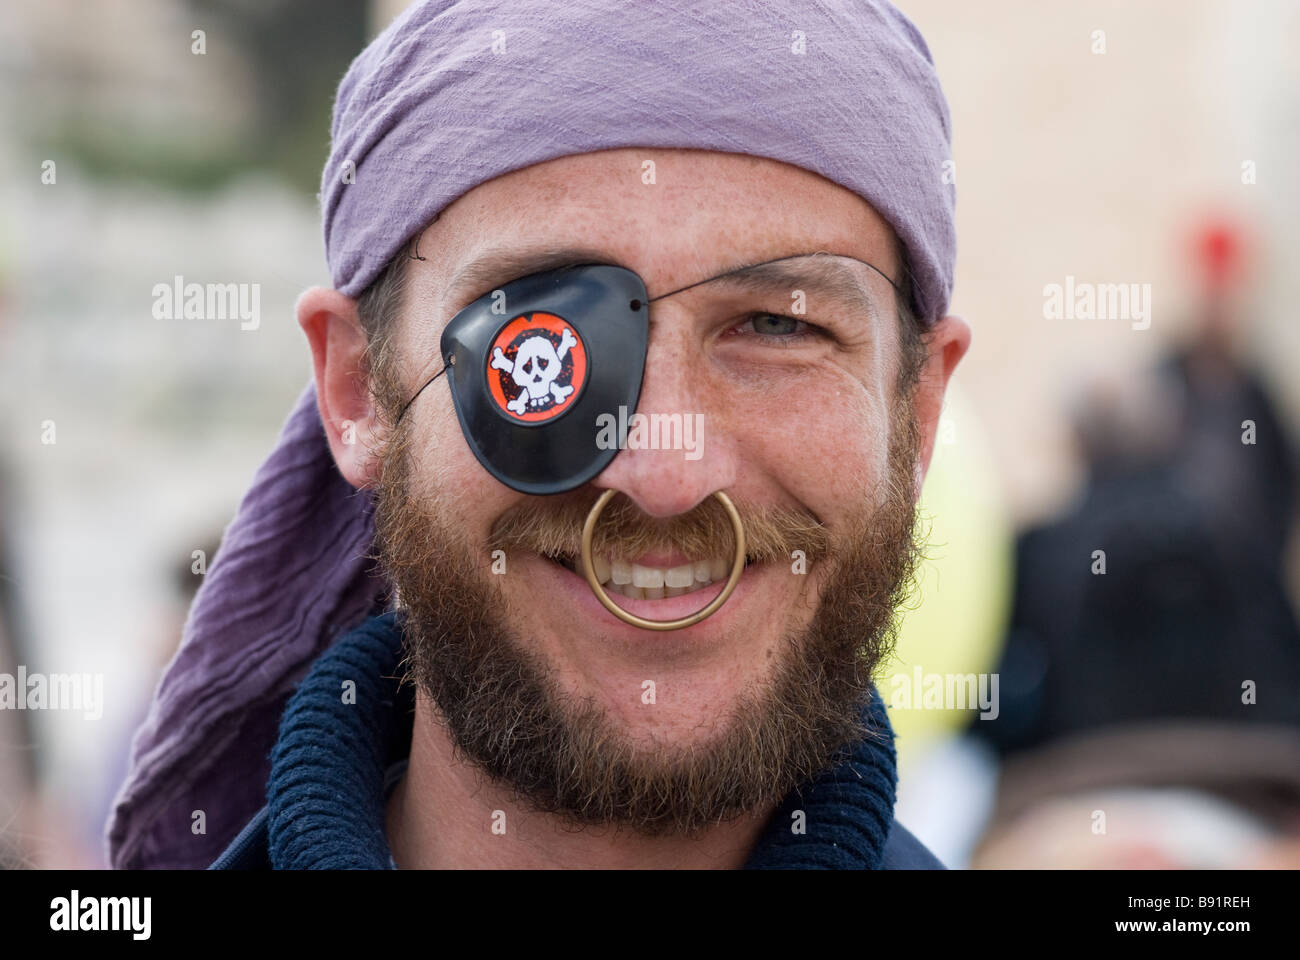 Jewish settler at the annual parade marking the Jewish holiday of Purim in the old city of Hebron Israel - Stock Image